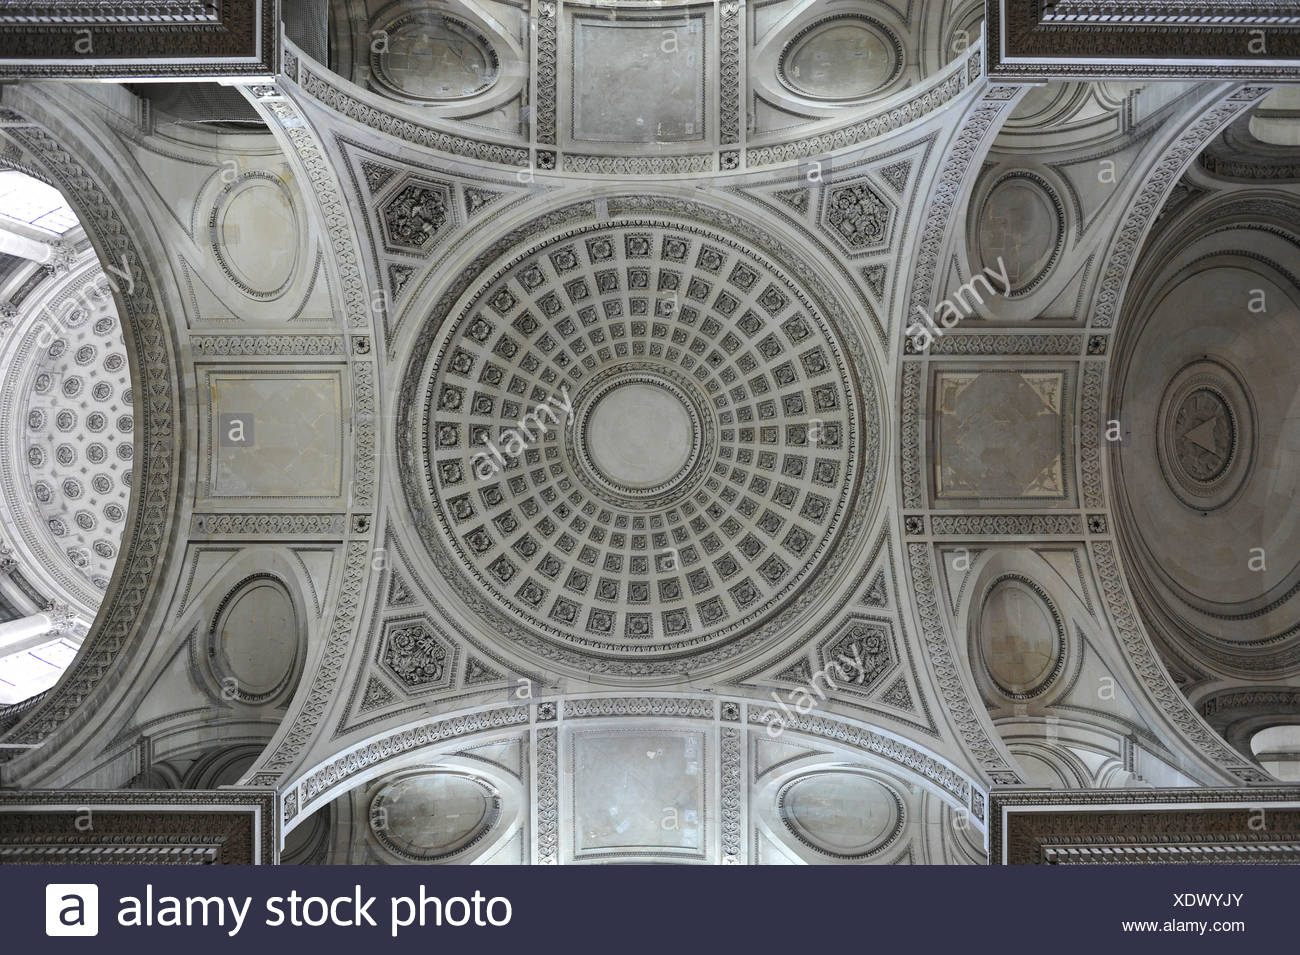 Interior dome, Panthéon, a secular mausoleum containing the remains of distinguished French citizens, Montagne Sainte-Geneviève - Stock Image